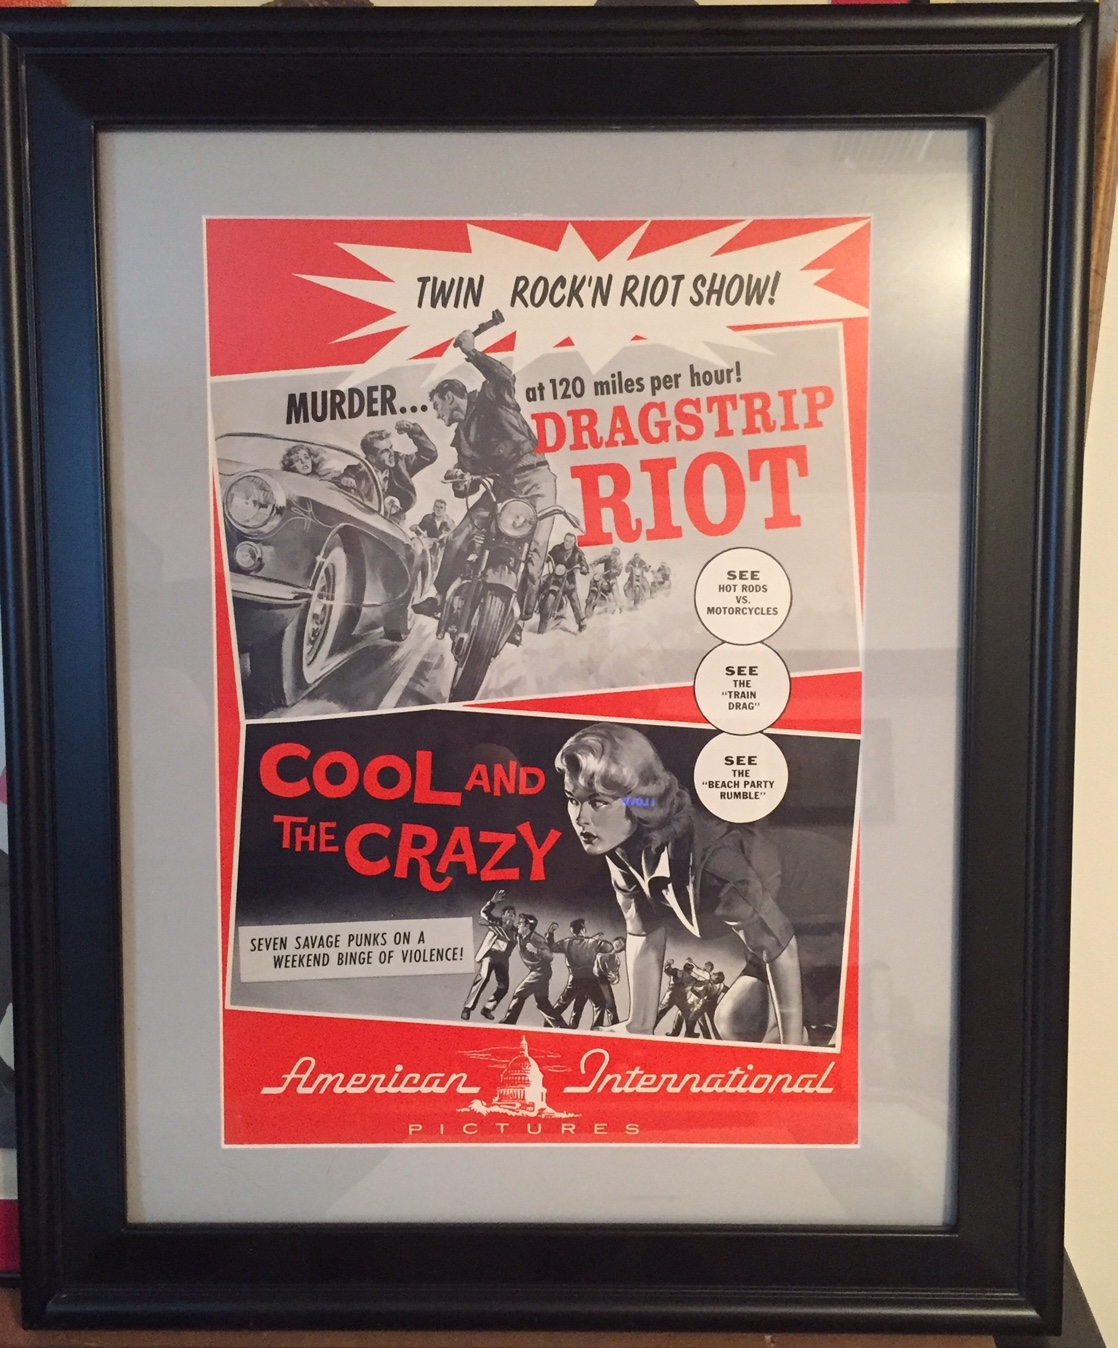 dragstrip riot - cool and crazy pressbook framed